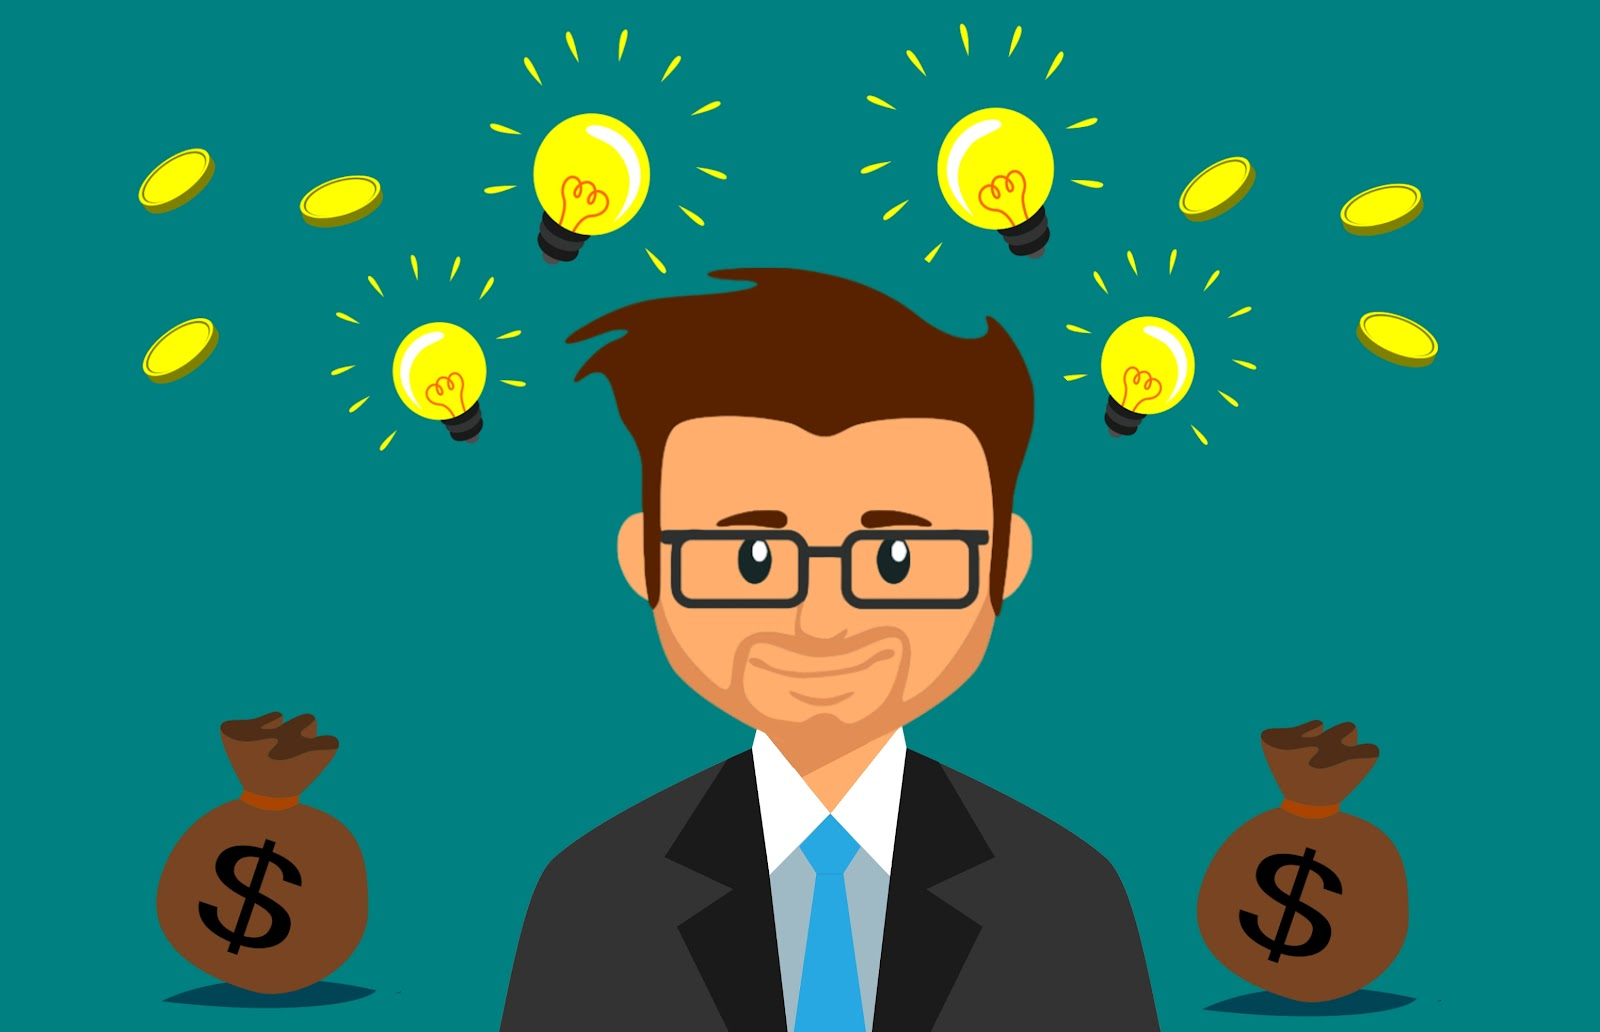 A cartoon man wearing glasses and a suit has light bulbs above his head and a bag of money by his left and right shoulders